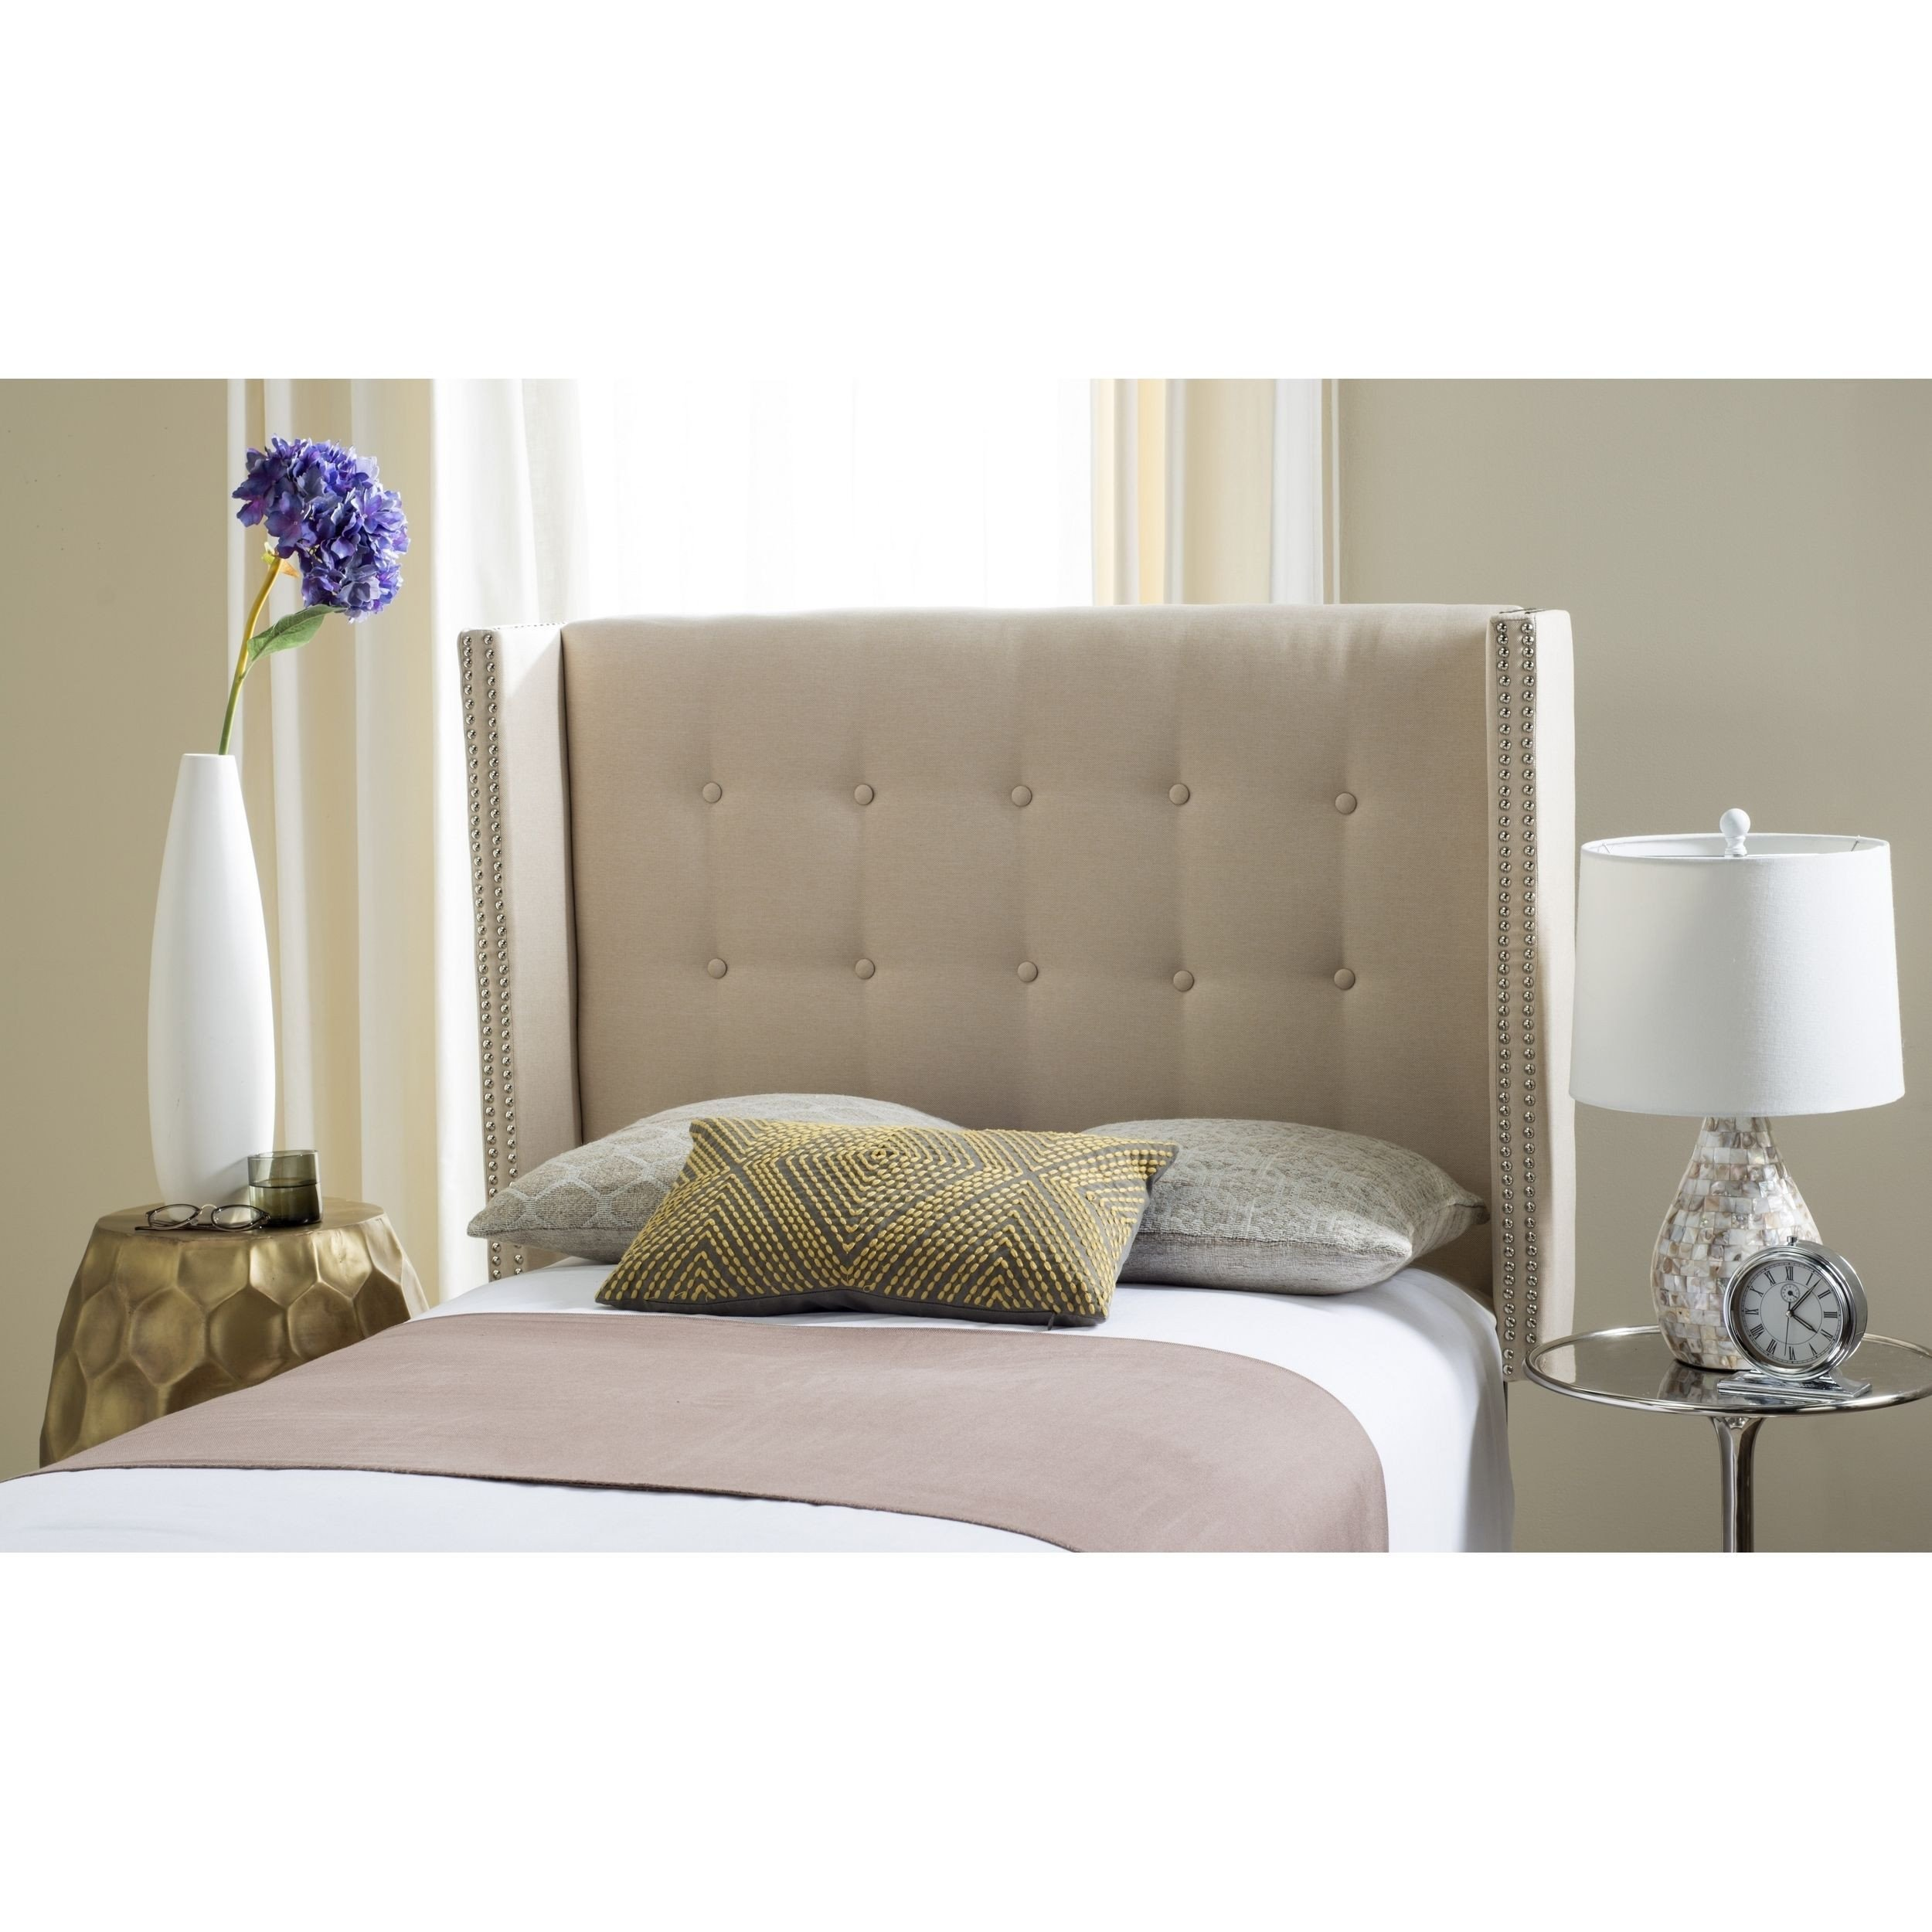 Off White Bedroom Furniture Luxury Safavieh Keegan Parchment Linen Upholstered Wingback